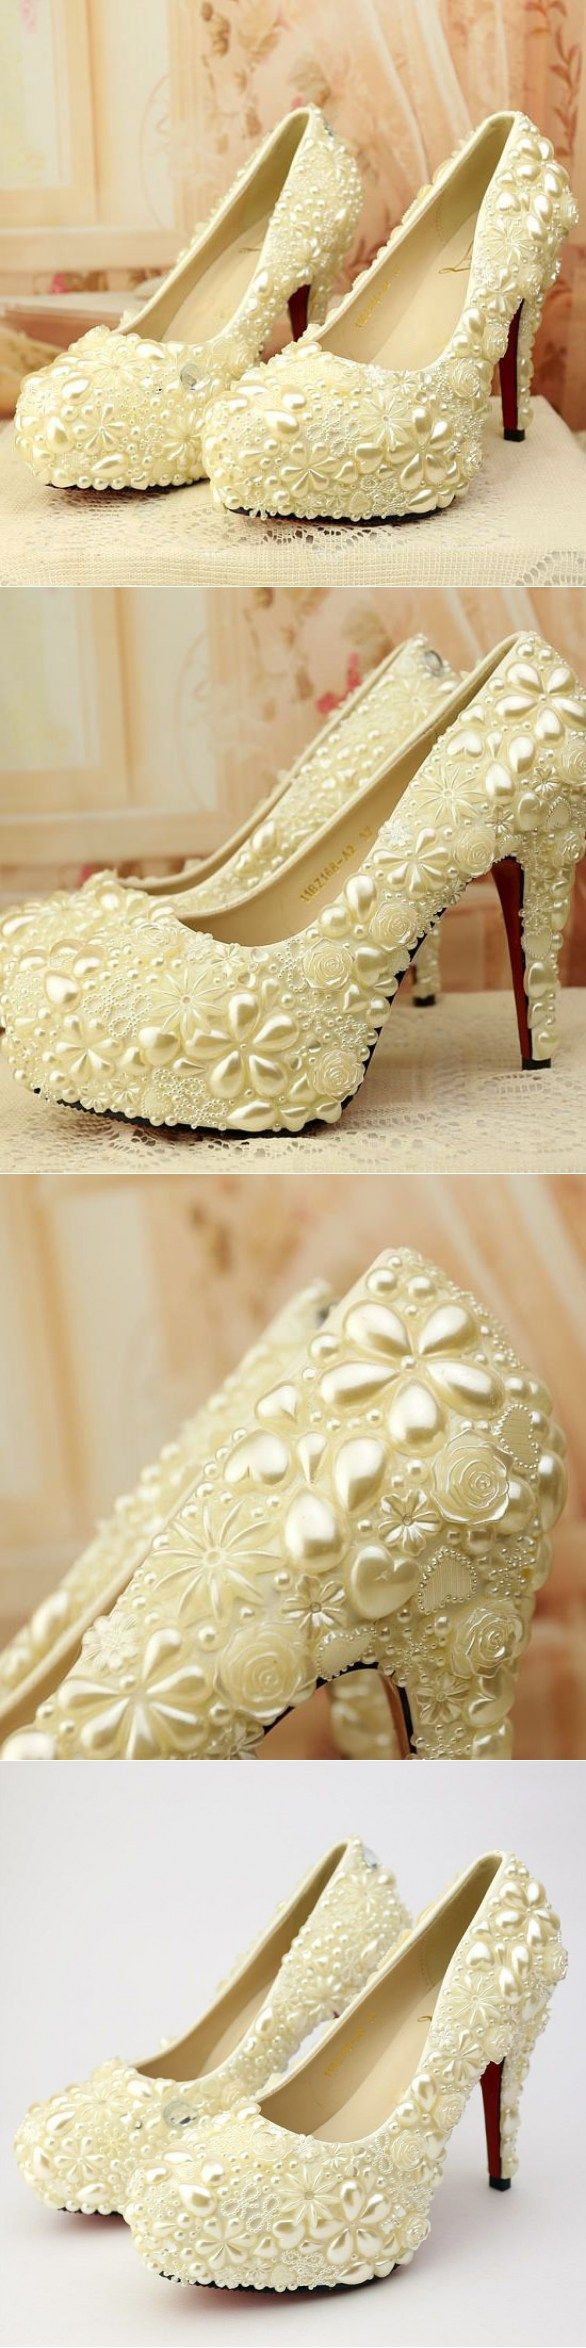 """Inexpensive Bounders On The Web With Twenty Bridal High Heeled Antique Sparkle 13 Year Olds Ankle Heel Booties """"Brownish Pumps, Beautiful Bounders Photos"""" Matte Closed Toe Bling Bride Shoes Polka Dot Rubber Sole Thin Strap Bridesmaids Crystal Heels Tango Craziest Ankle Booties Buckle Girl Striper Shimmer Ankle Stiletto."""